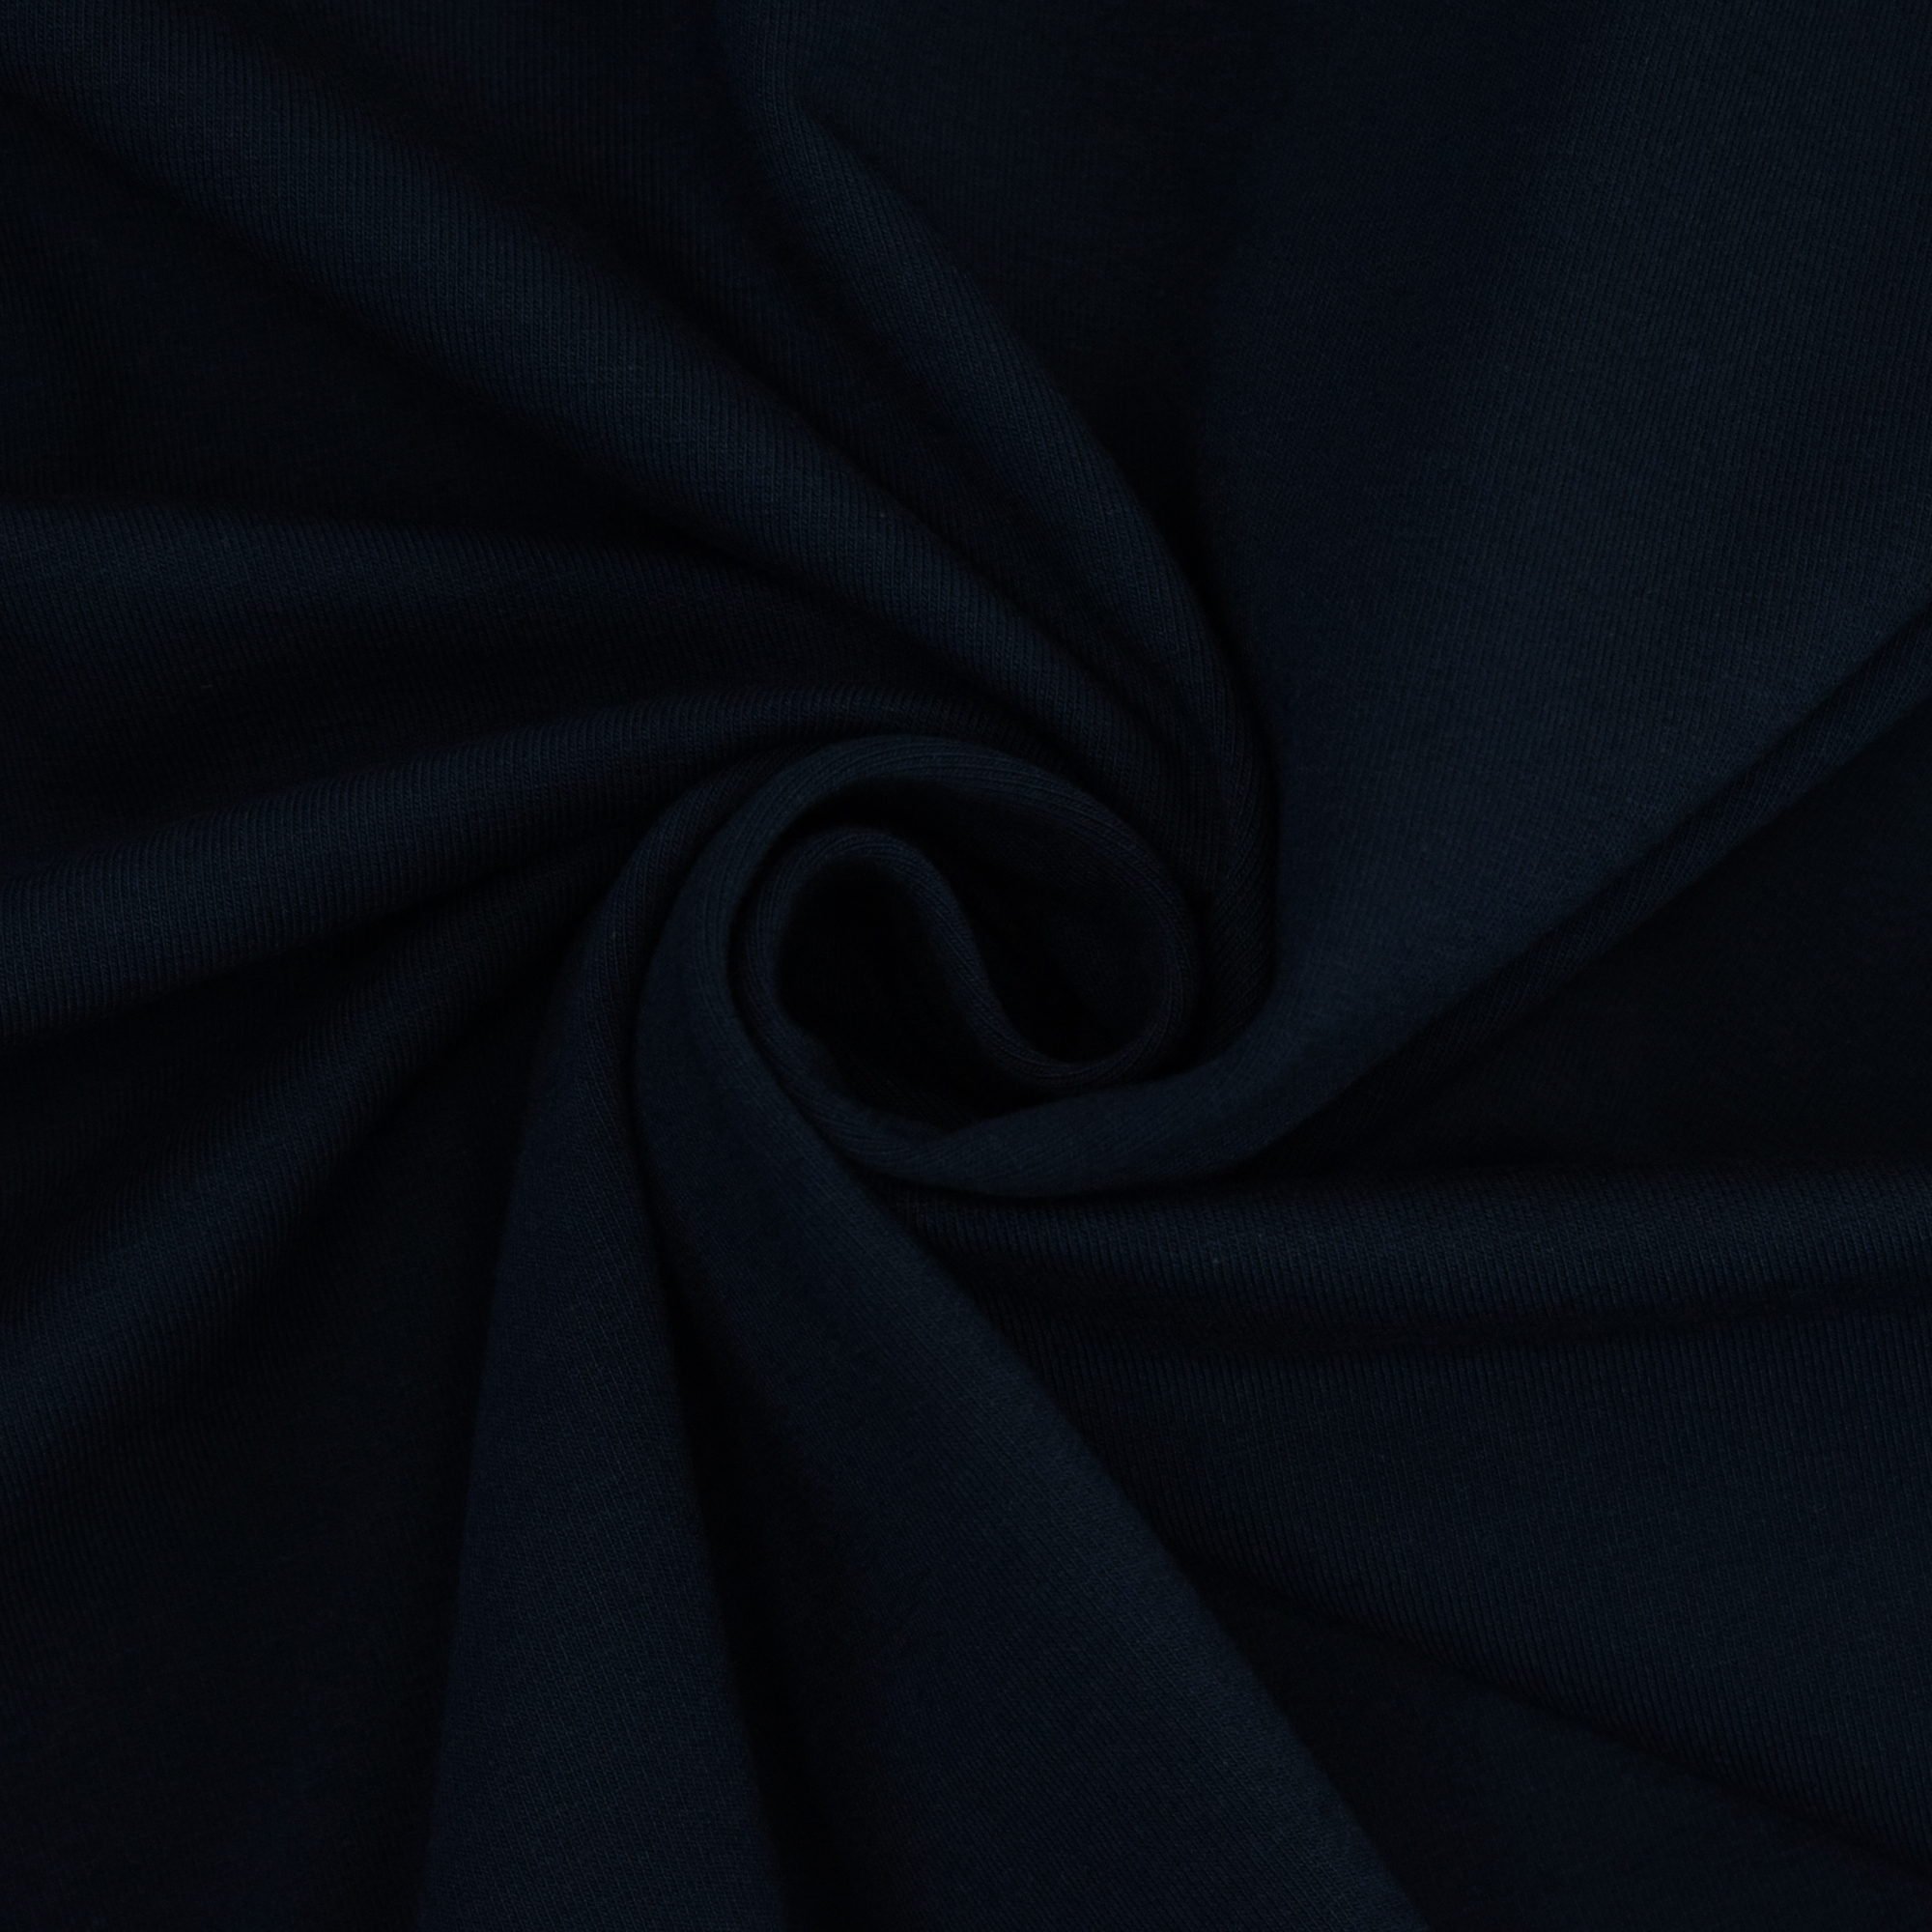 Cotton jersey plain, navy blue | 455.421-6207 | blau